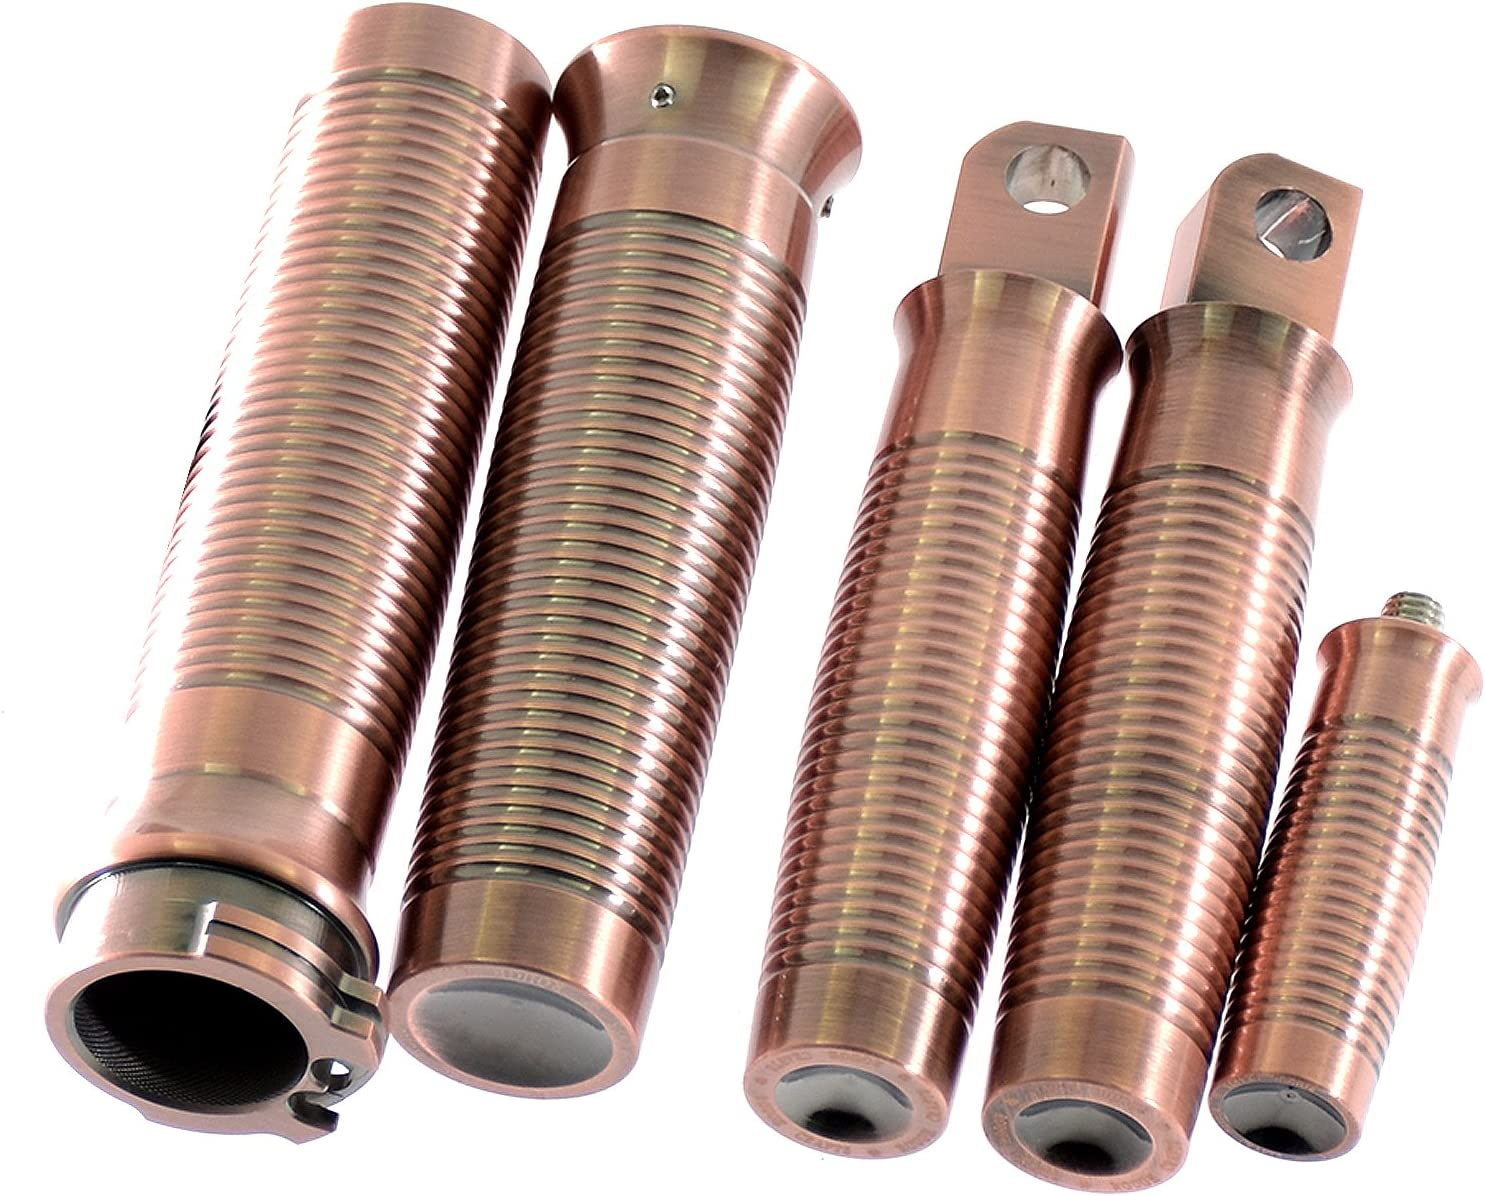 Motorcycle CNC Handlebar Grips Foot Pegs Shift Peg For Harley Sportster XL1200 883 48 Softail Dyna Touring,Bronze